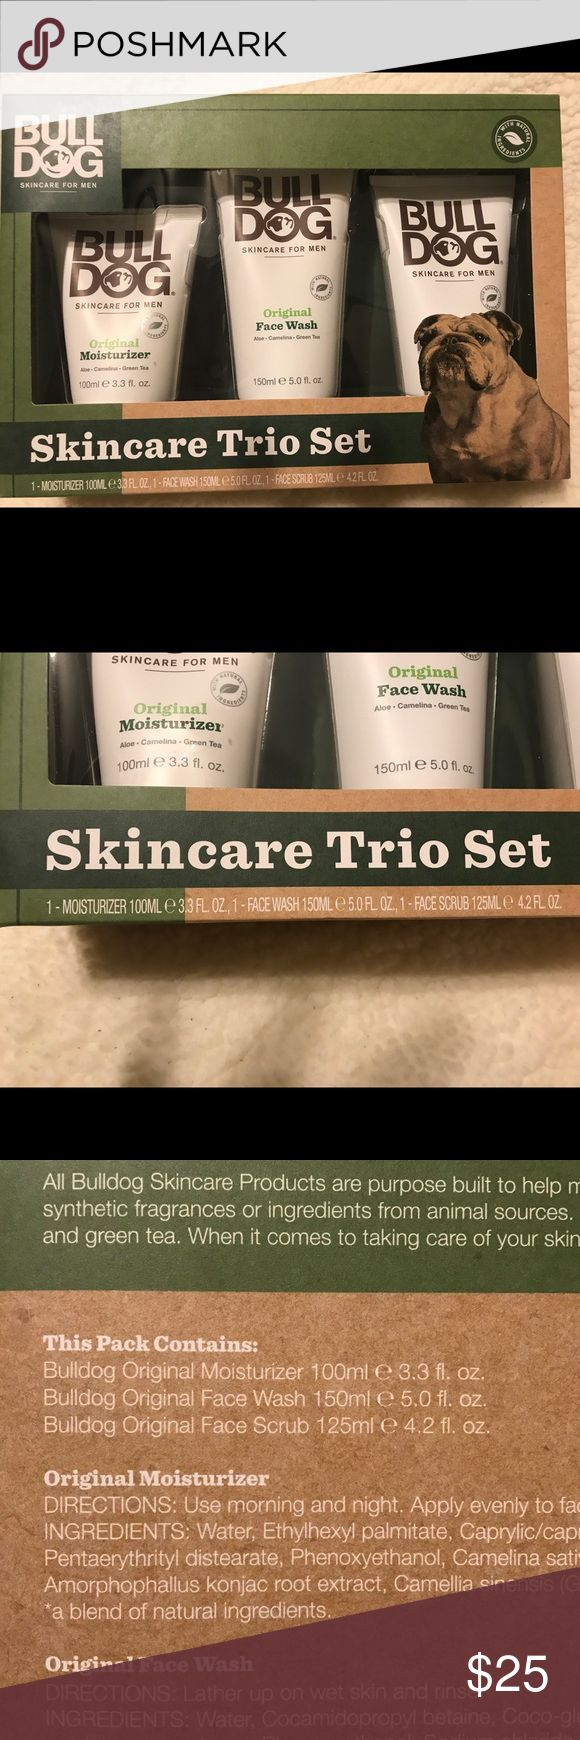 Bulldog Skincare Trio Set Bulldog Trio Set contains: Original Face Wash, Original Face Scrub and Original Moisturiser. Skincare for men All Original line contains: Aloe Vera, Camelia Oil, Green tea. Products do not contain artificial colours and are not tested on animals  Skin Concern: basic care Recommended Skin Type: normal, combination Used For: moisturizing, exfoliating, basic cleansing For Use On: Face Product Form: cream Product Warning: no warning applicable Bull Dog Skincare For Men…